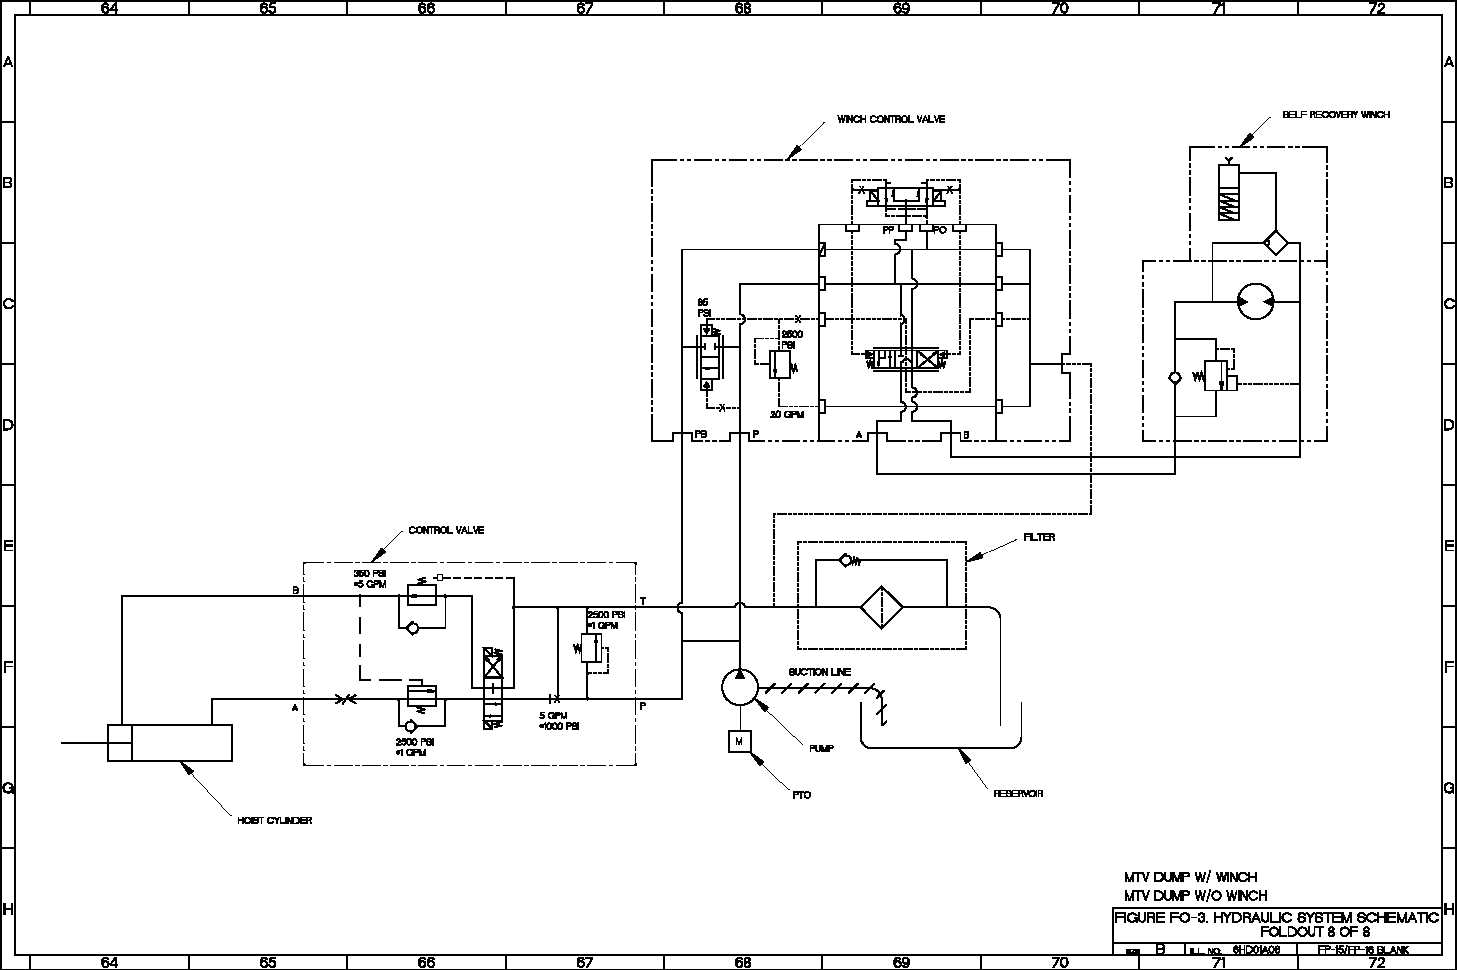 Hydraulic Schematic System Circuit Connection Diagram